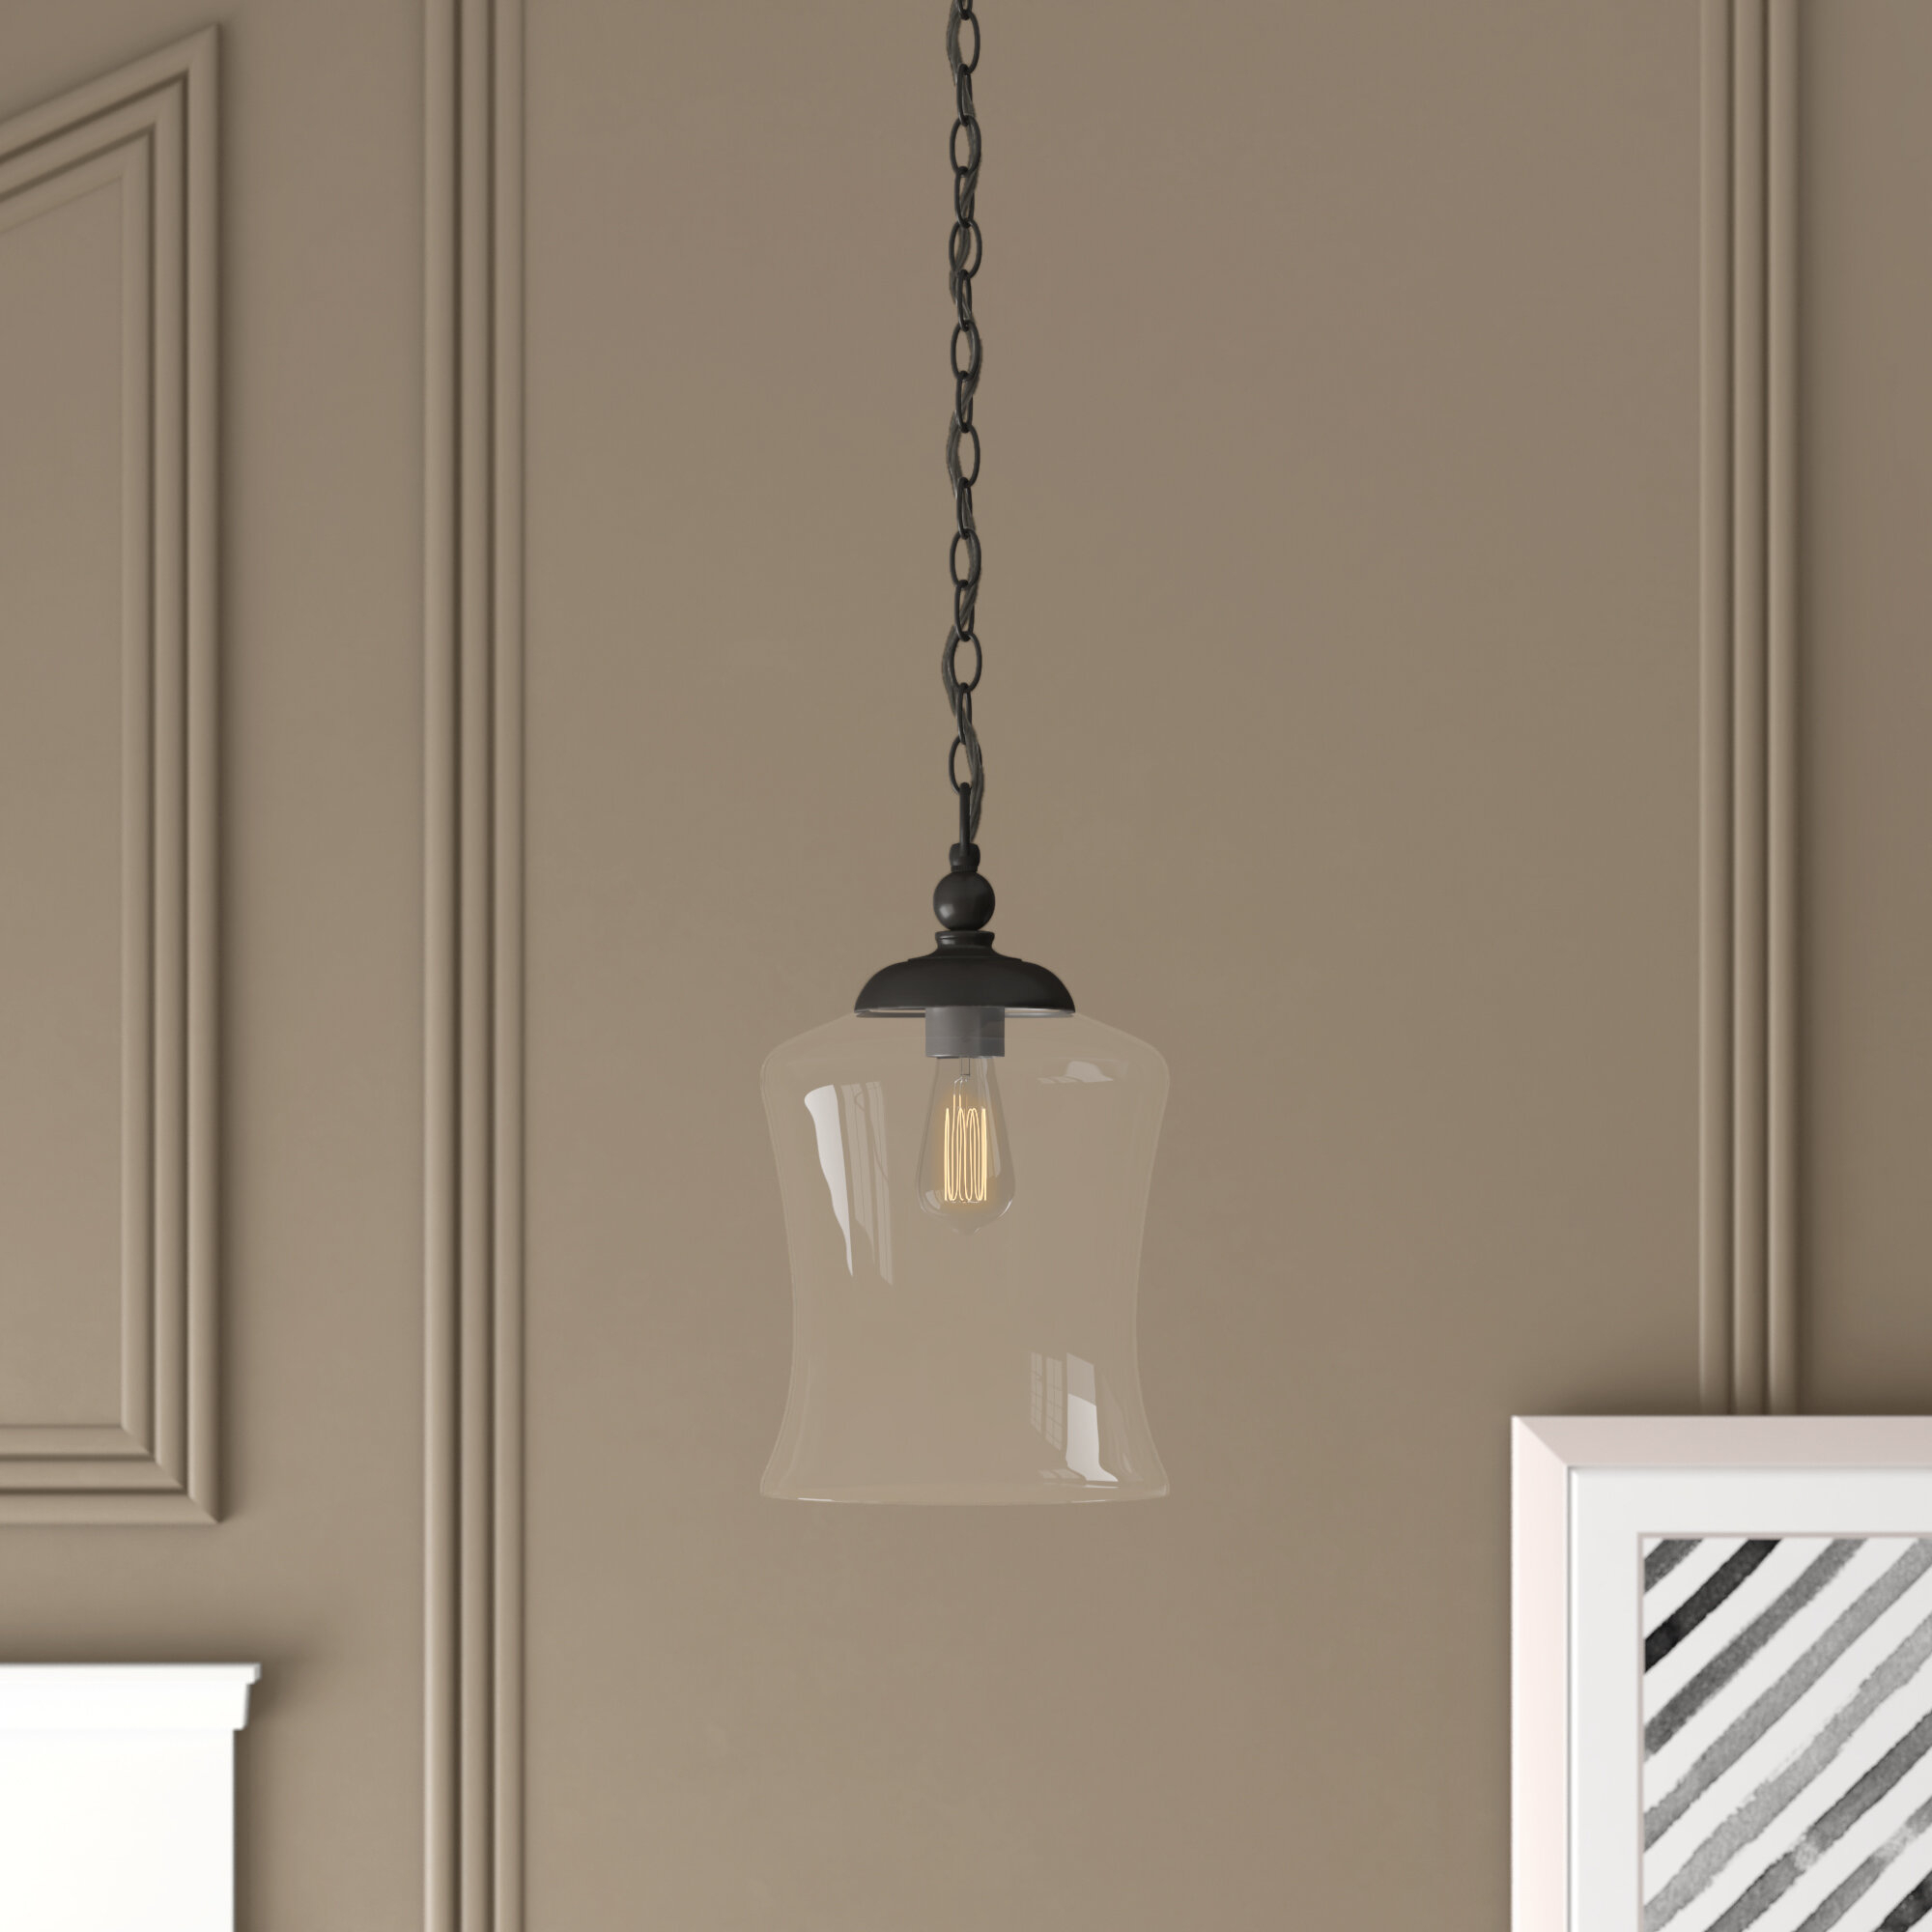 Wentzville 1 Light Single Bell Pendant For Sargent 1 Light Single Bell Pendants (View 29 of 30)